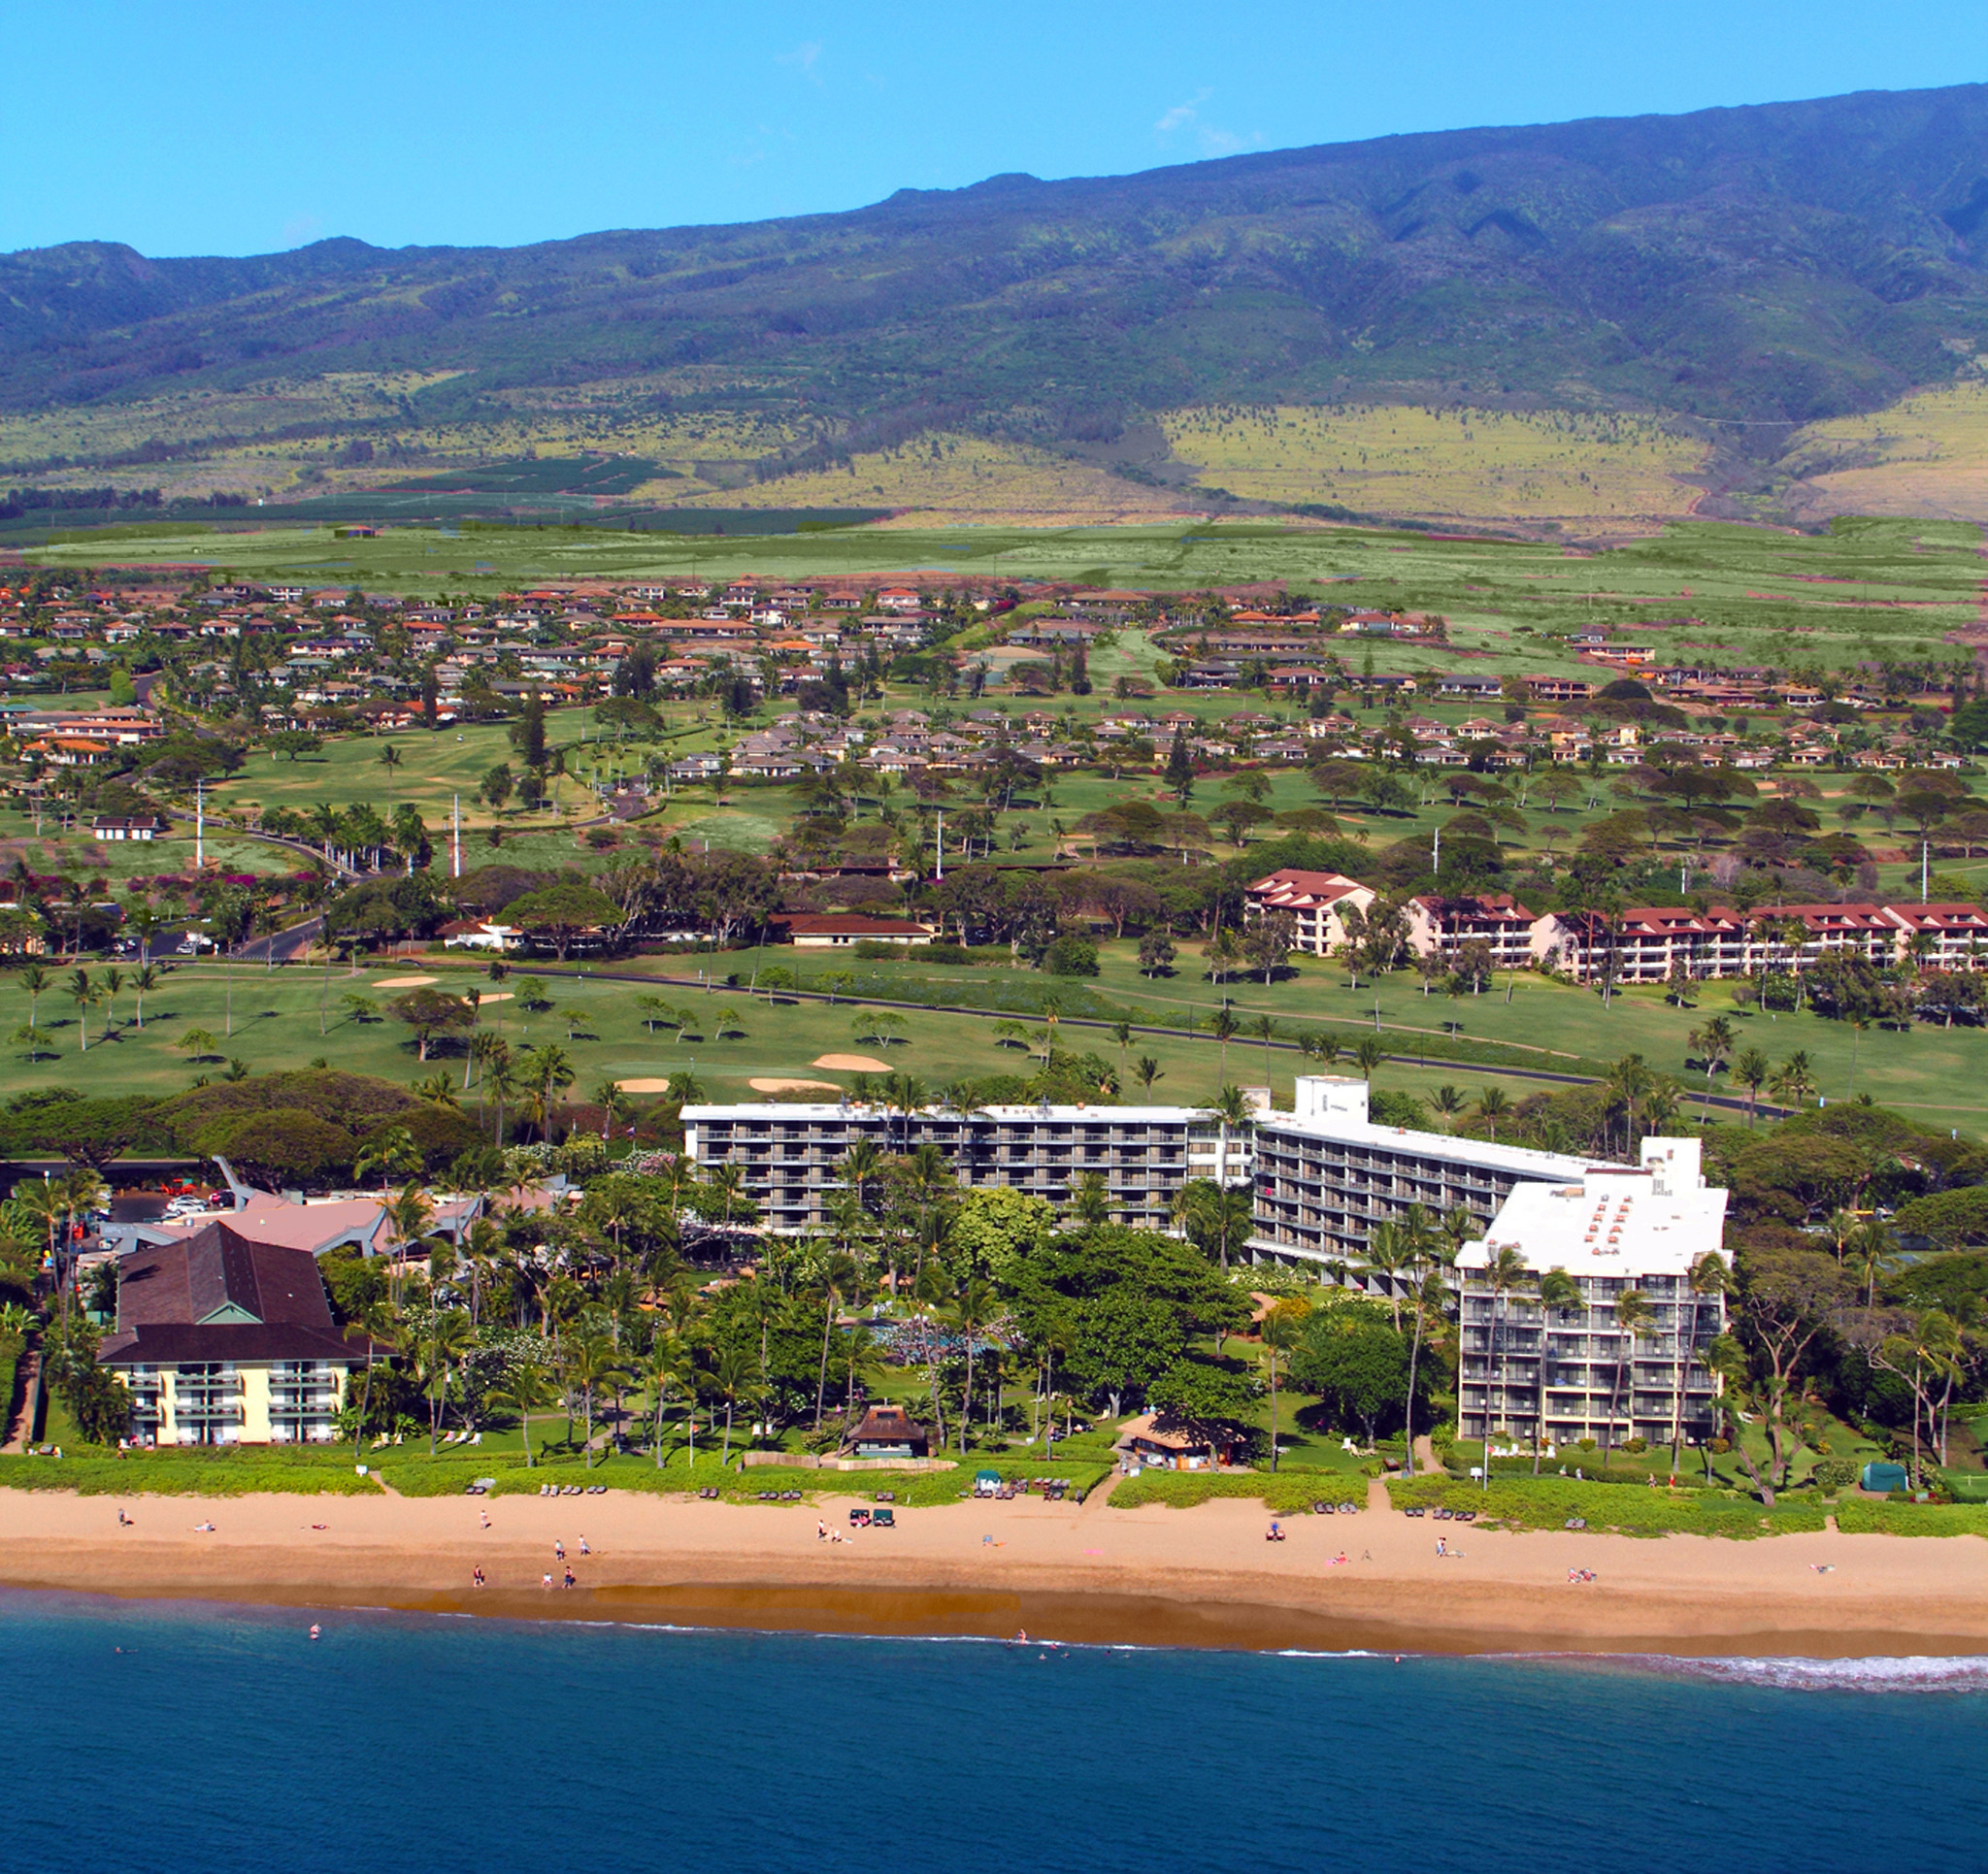 Hawaii Free Breakfast S With Kaanapali Beach Hotel Deal Chicago Tribune